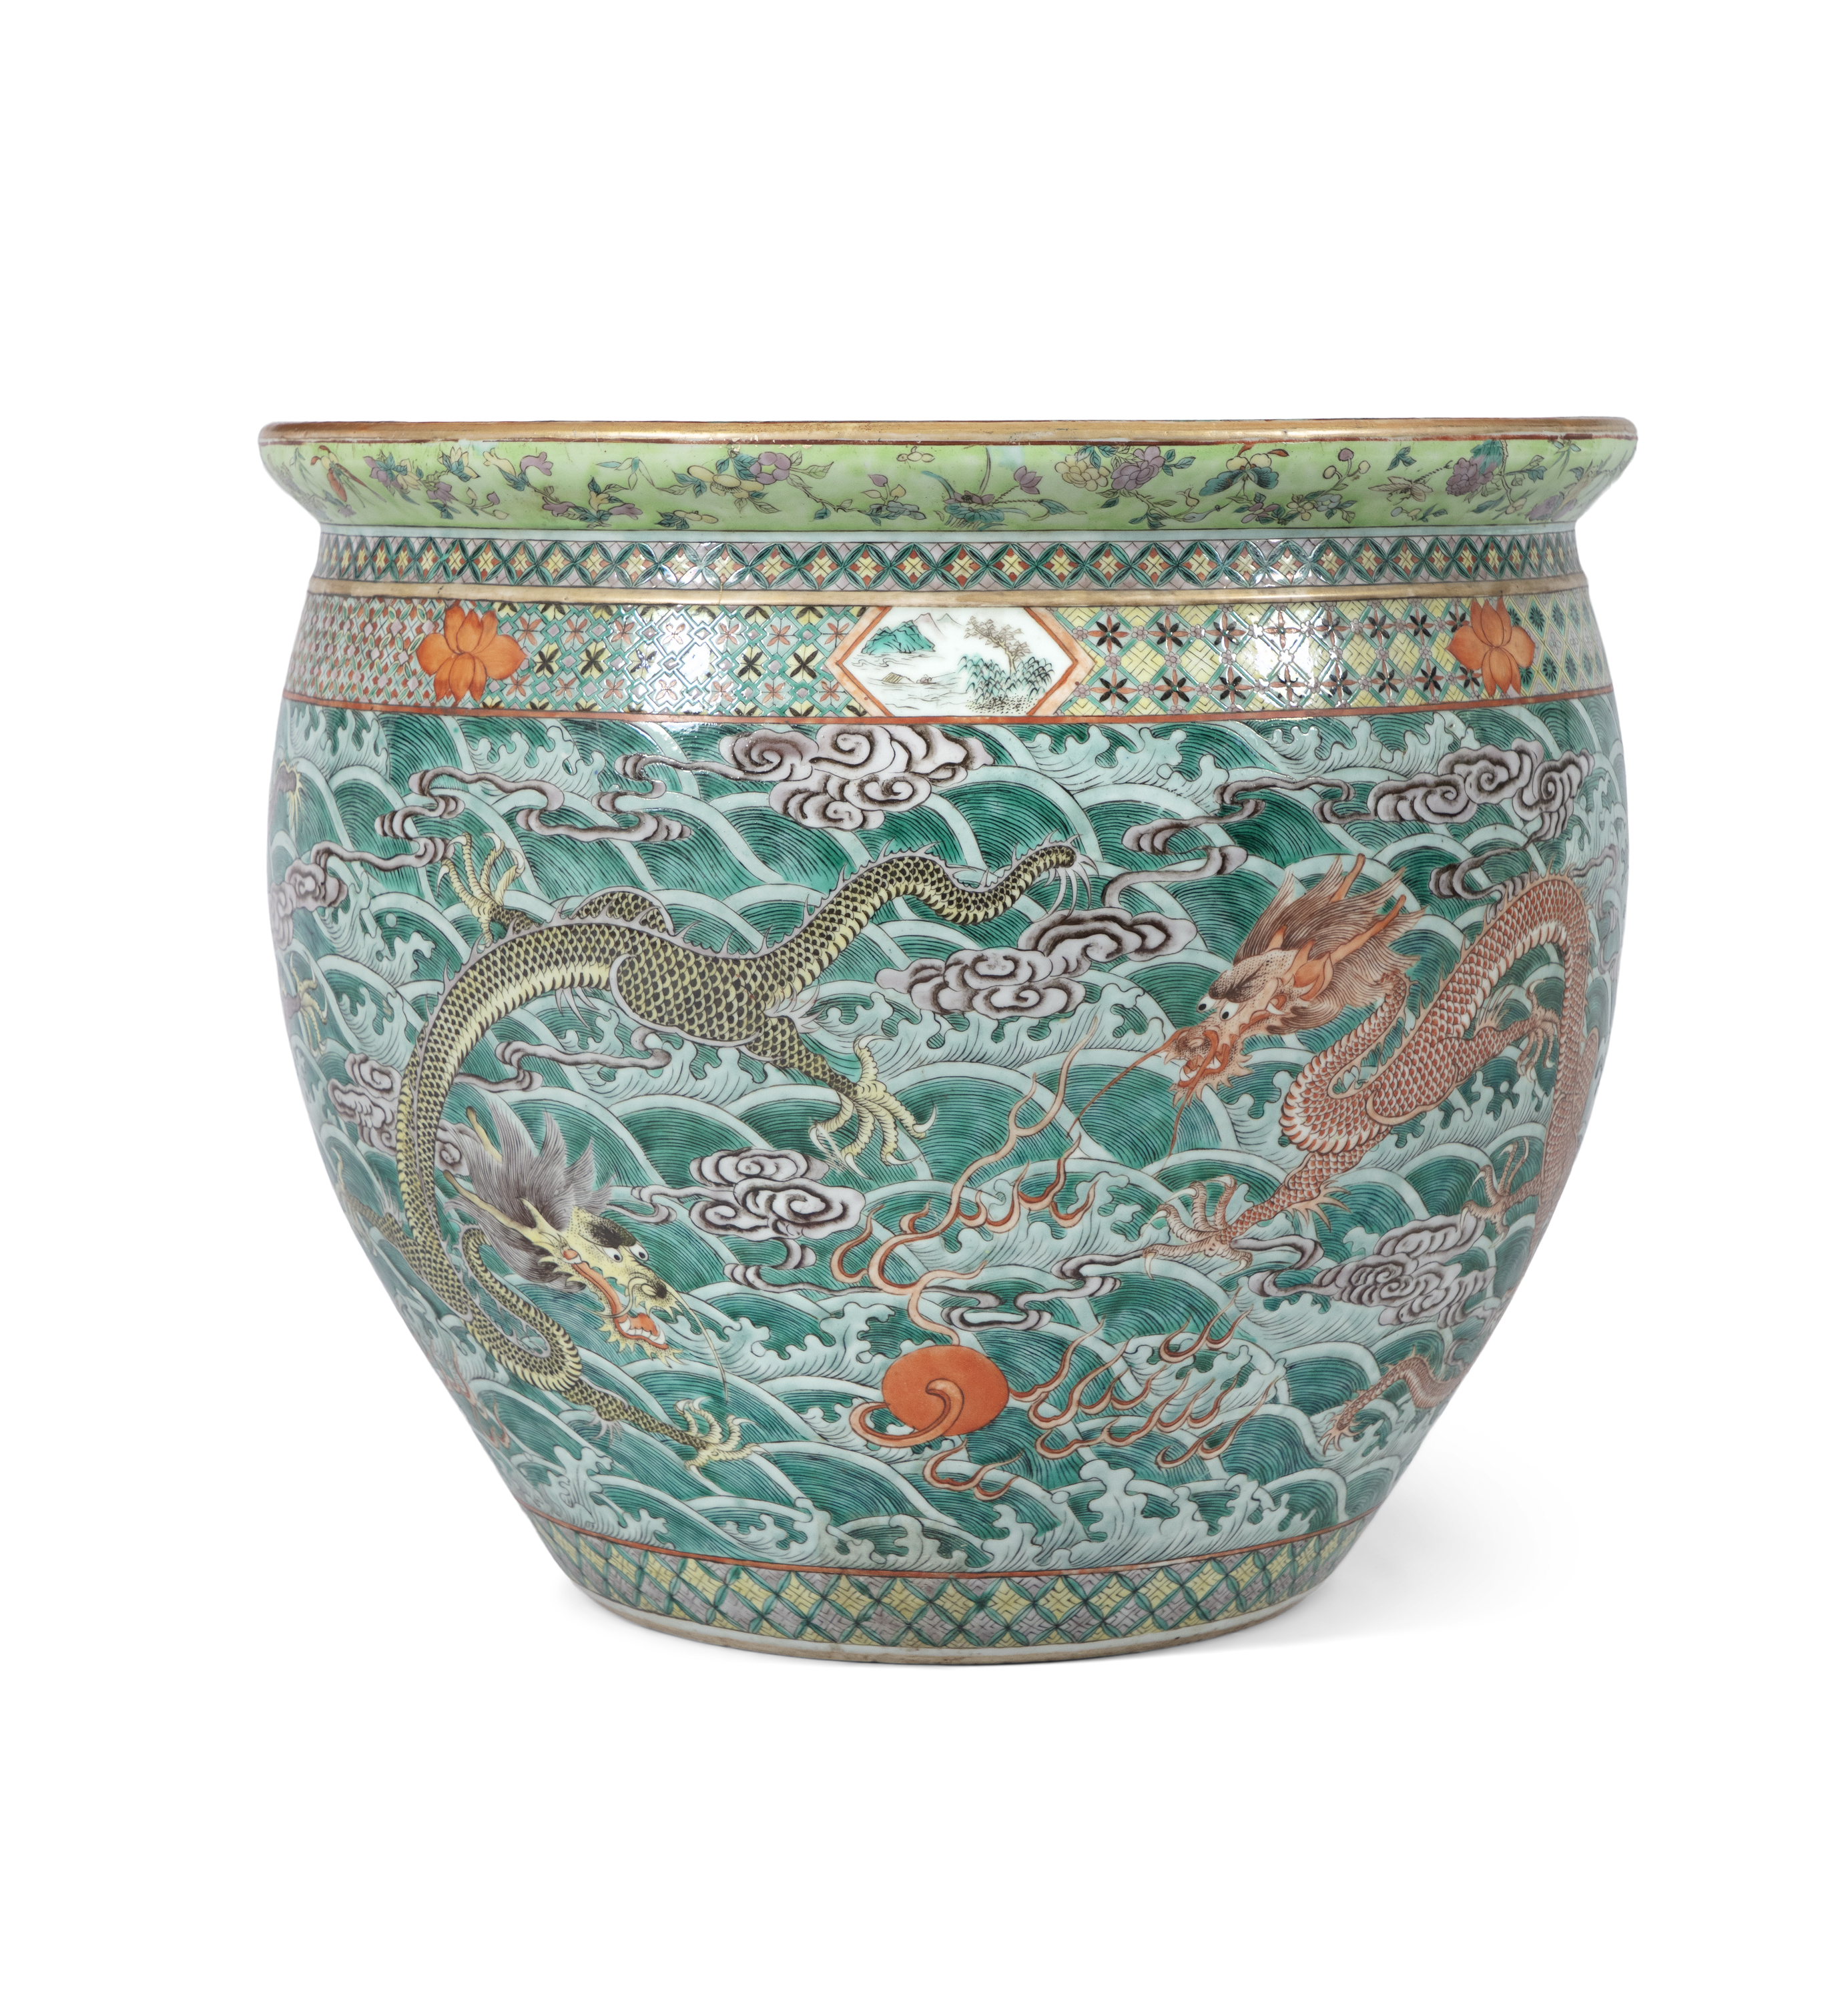 A LARGE 'FIVE-CLAWED DRAGONS' FAMILLE VERTE AQUARIUM /FISHBOWL China, Qing Dynasty, 19th century The